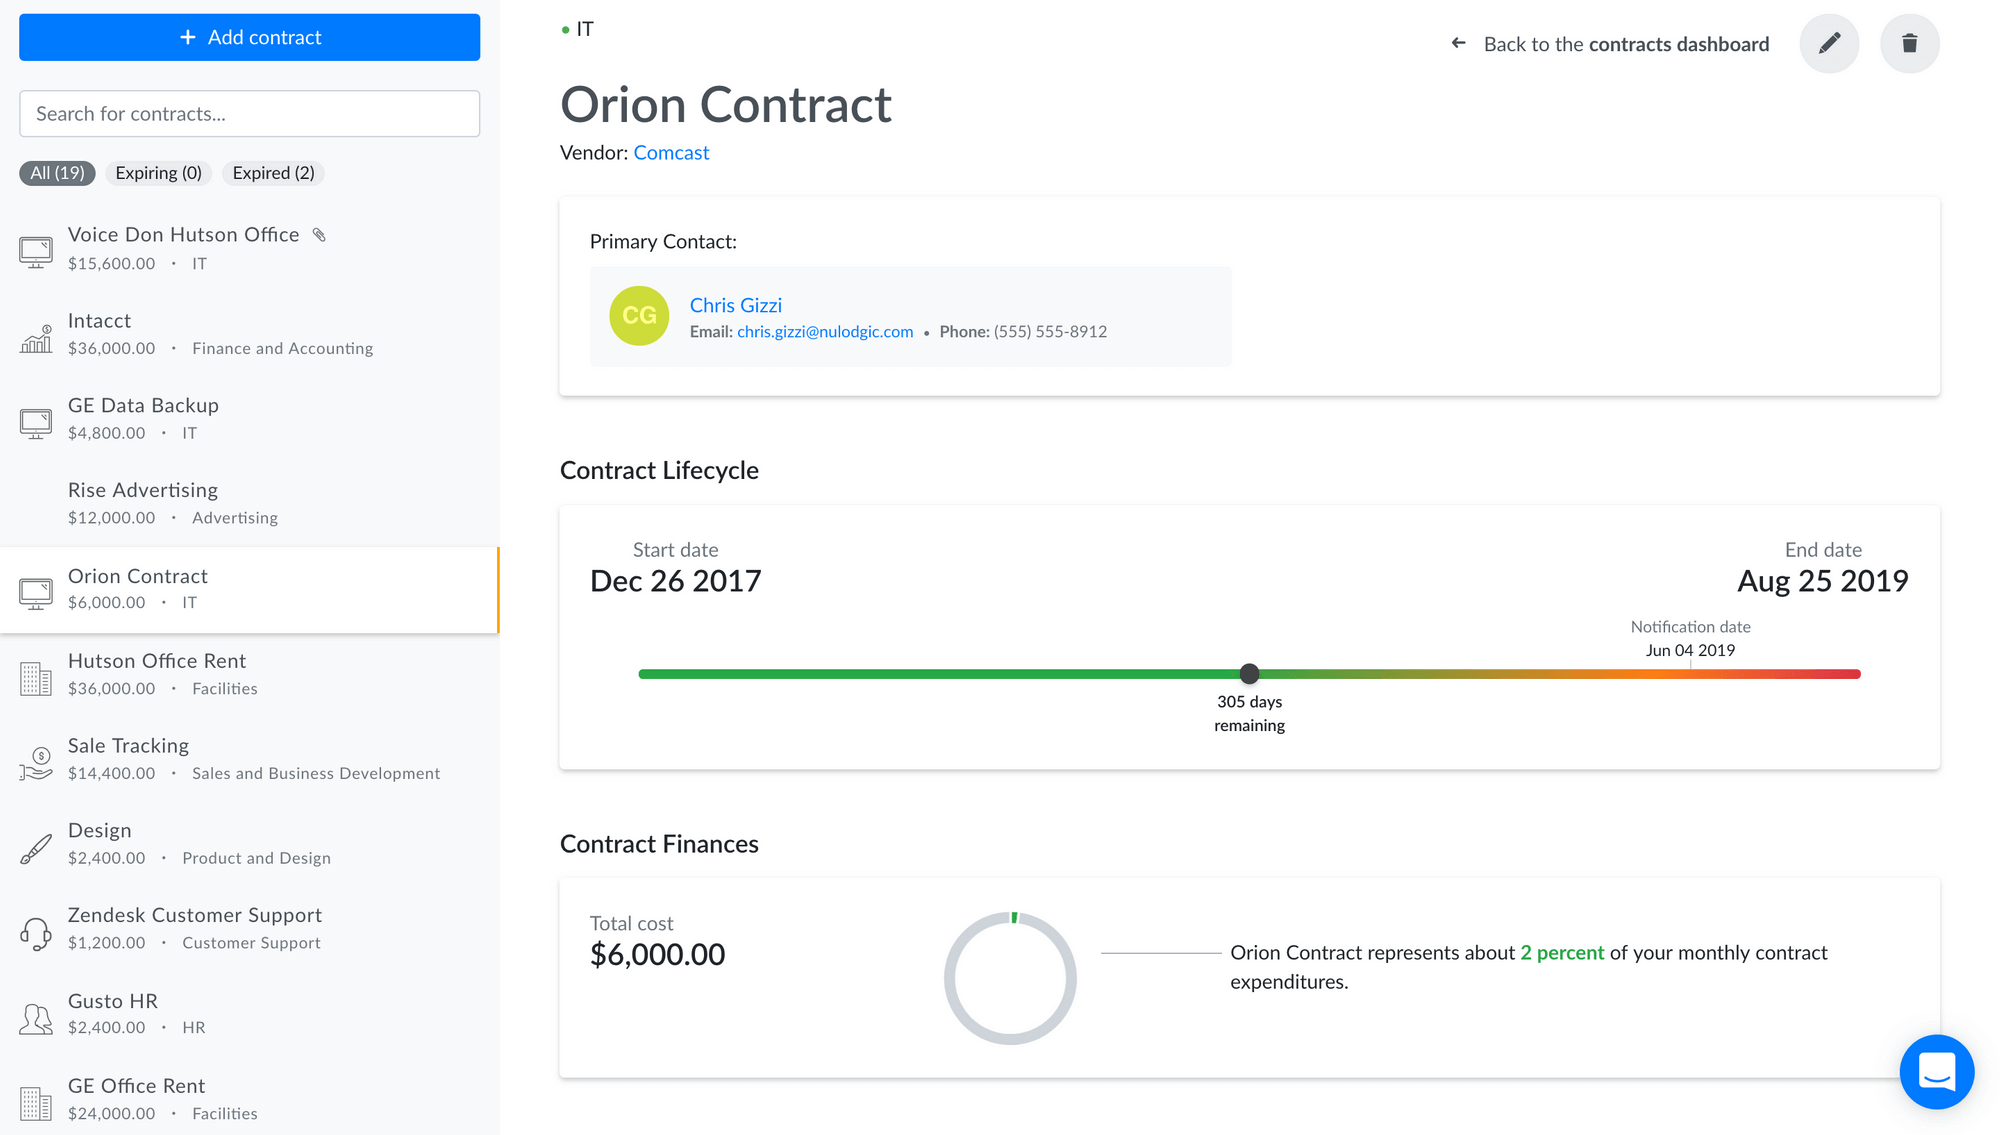 Contracts Show Page